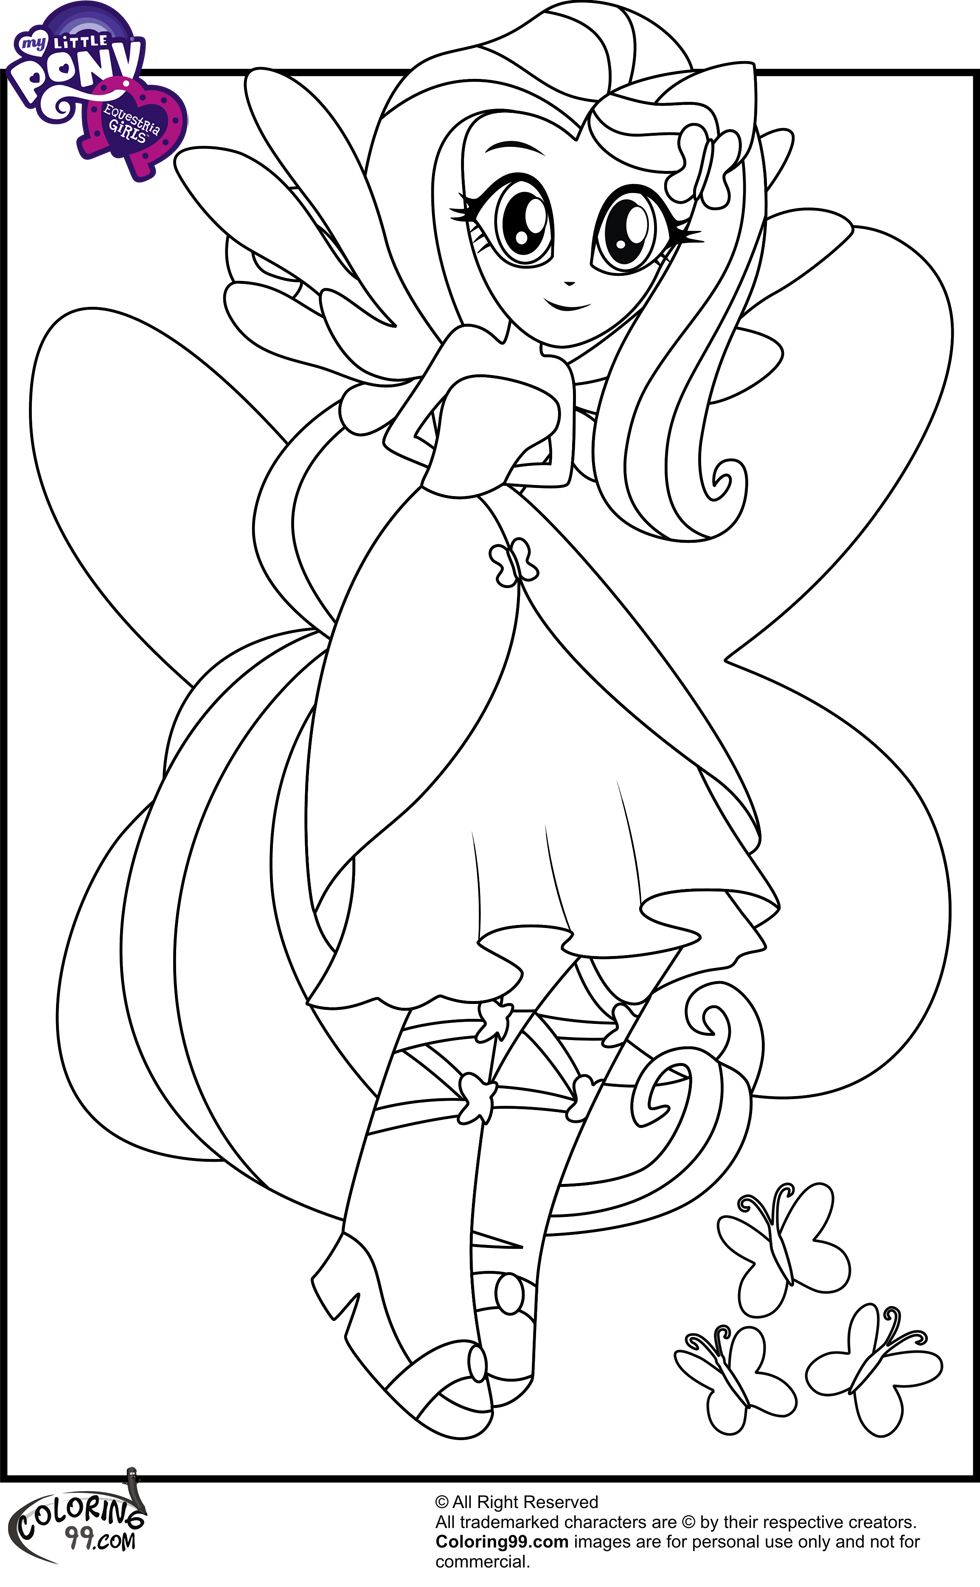 Coloring Pages Of My Little Pony Equestria : My little pony equestria girls coloring pages team colors